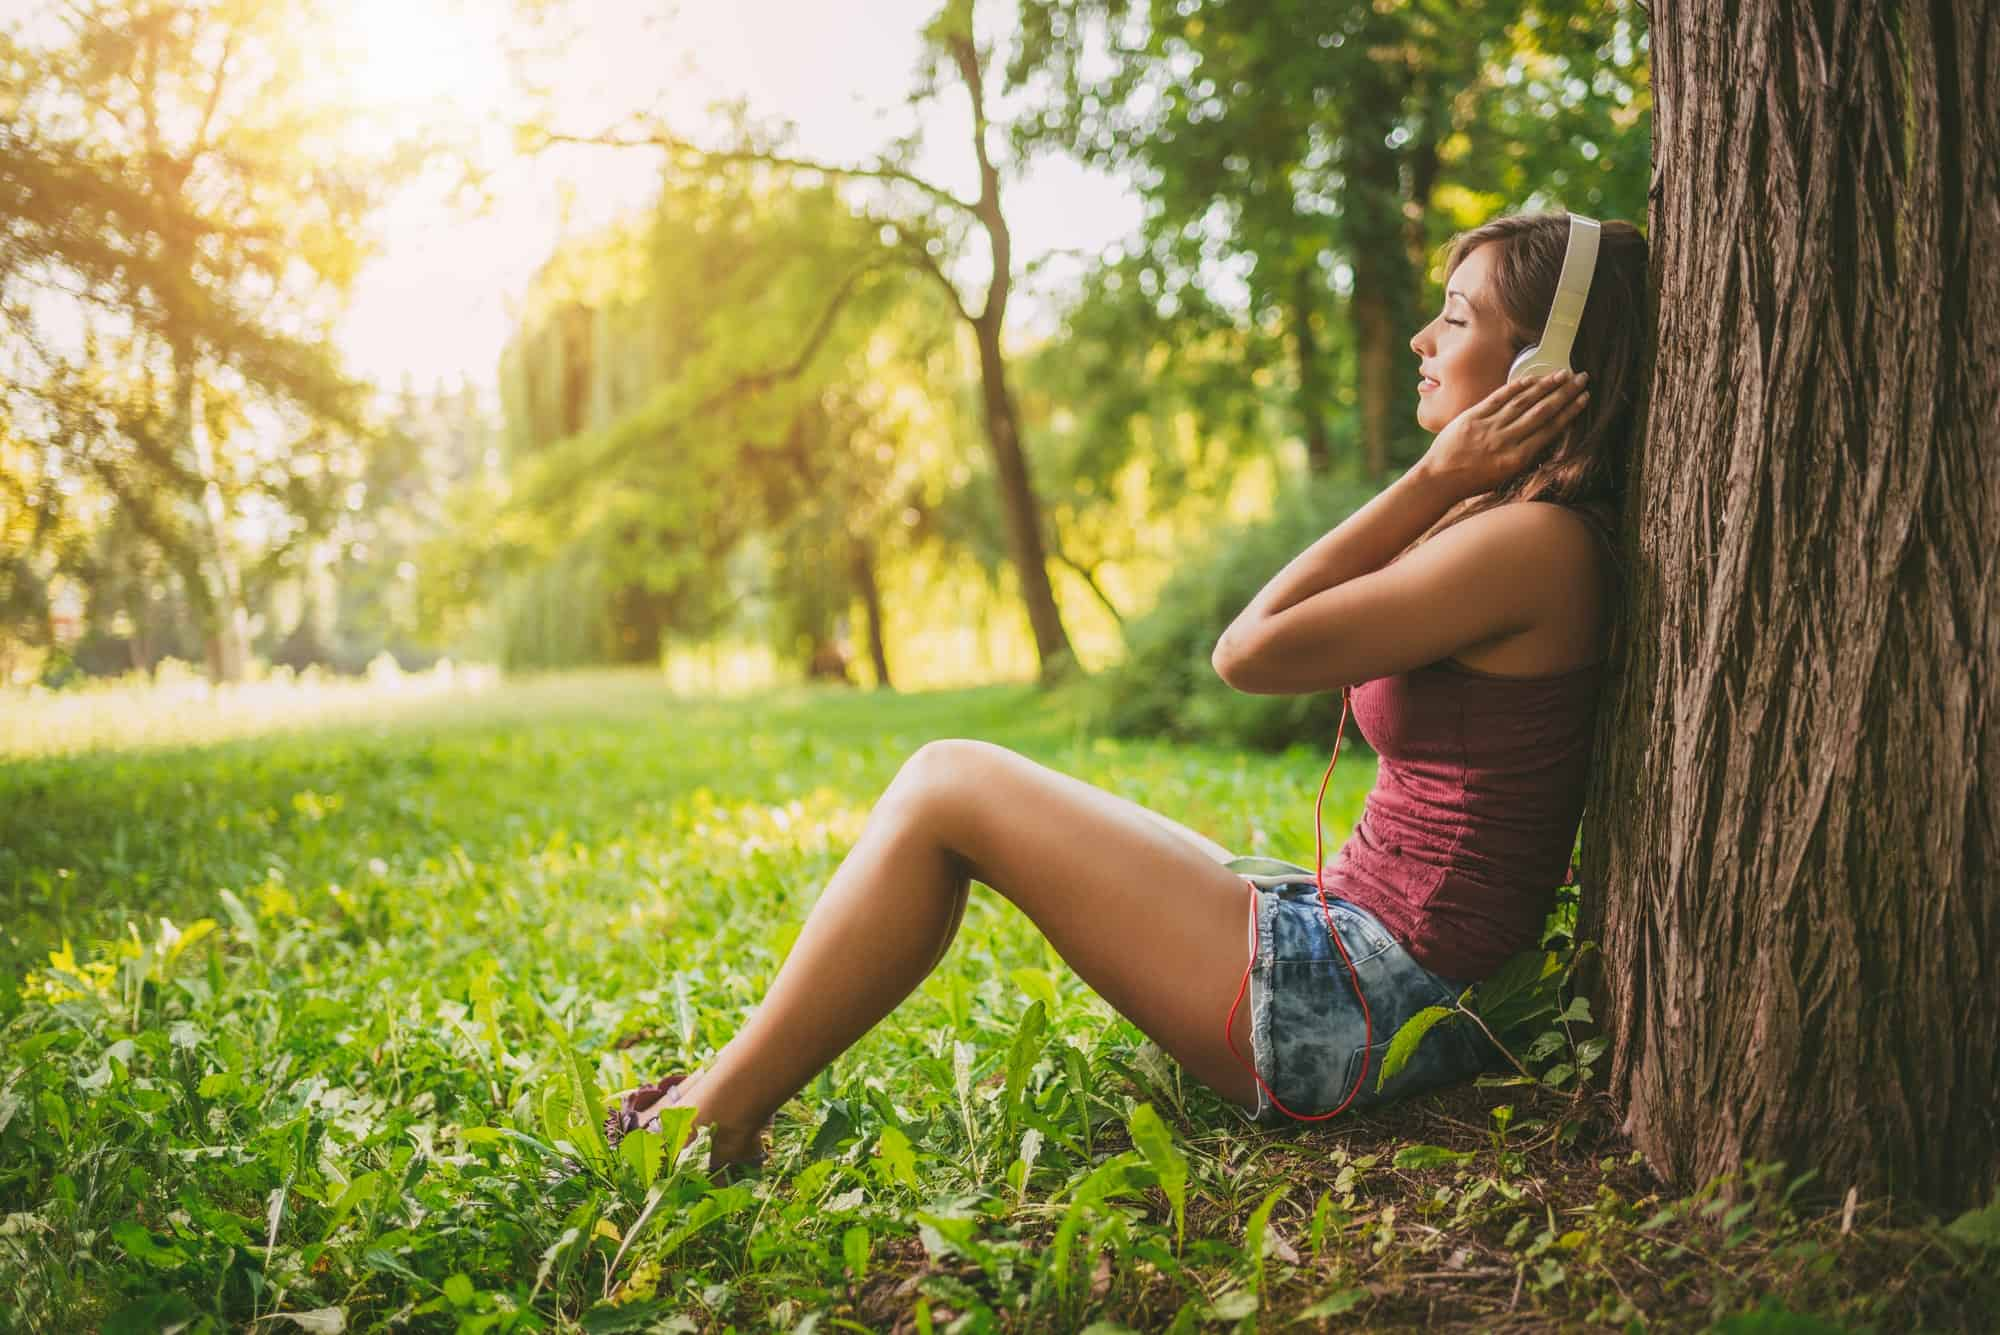 Listening Music In The Nature - positive mindset